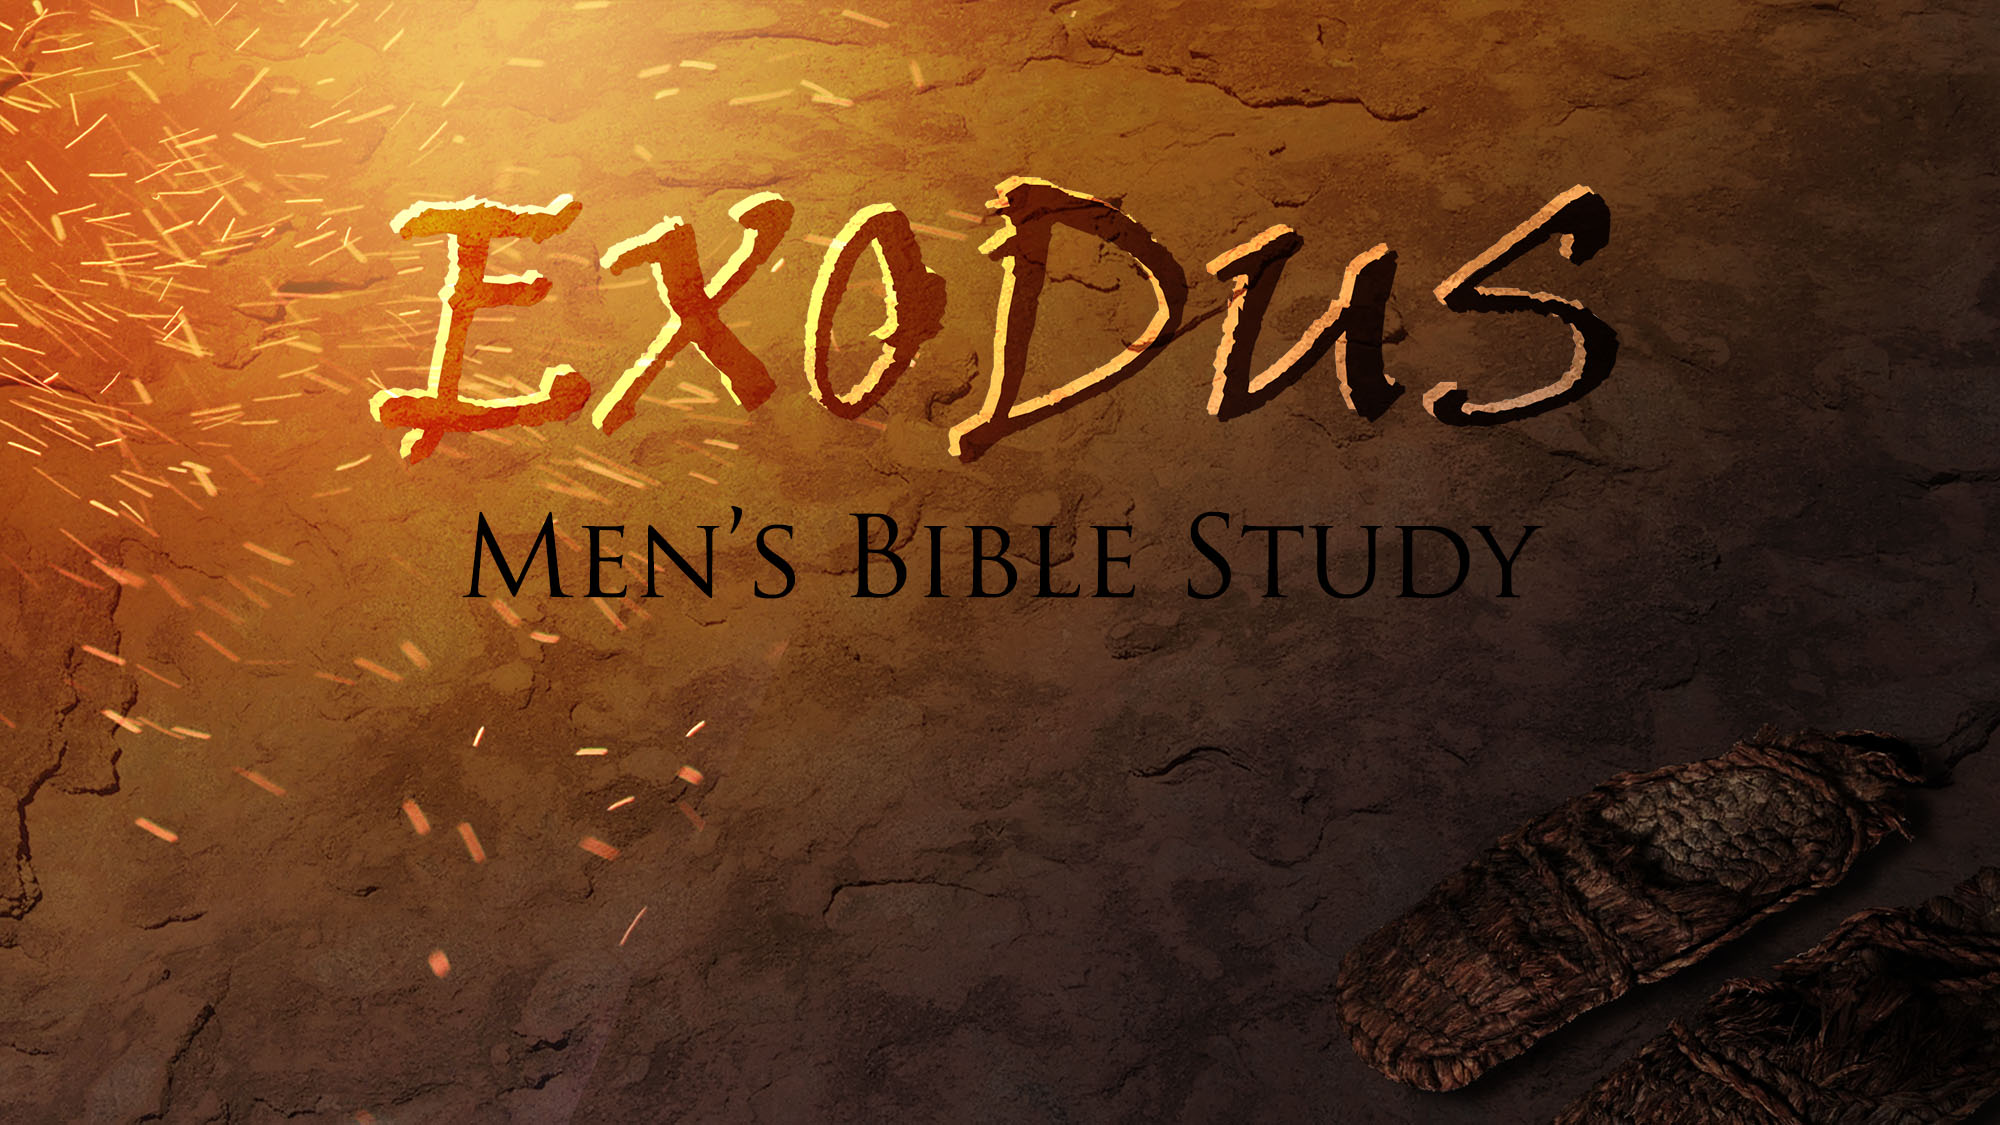 Mens bible study 2016 wide